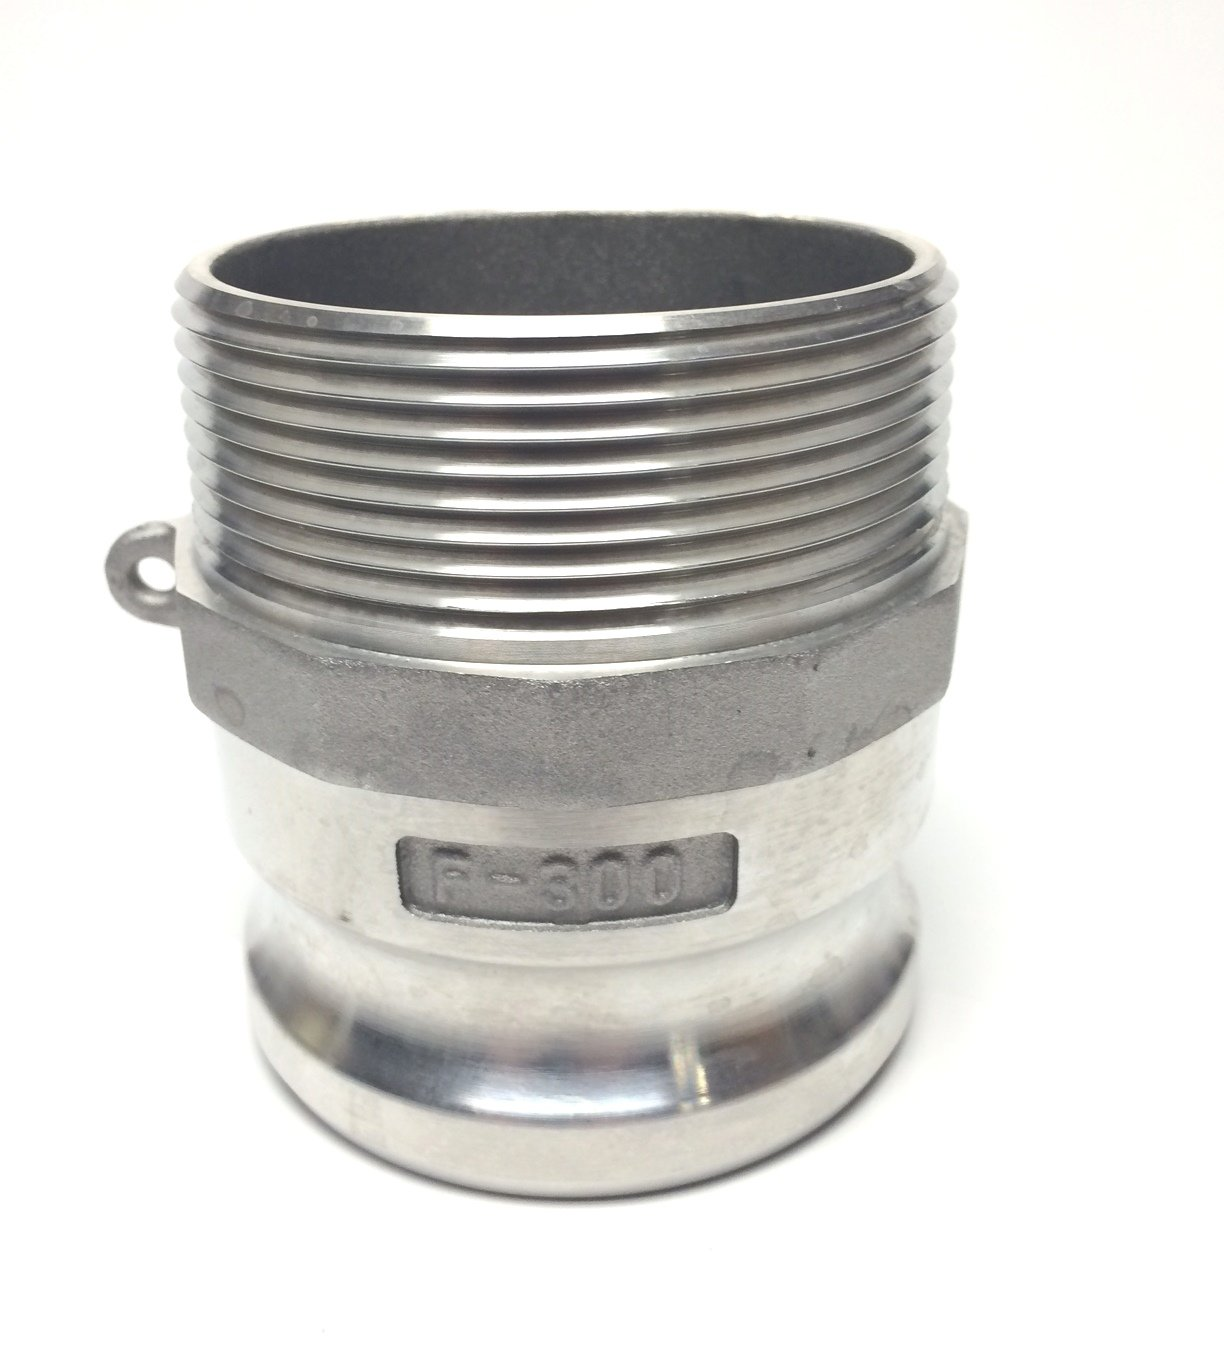 2.5 Plug NPT 2.5 Plug x 2.5 Male Pipe NPT Adapter x 2.5 Male Pipe PT Coupling CF250F ALUM CF250F Aluminum Contractor Type F Cam and Groove Fitting Adapter CF1000625